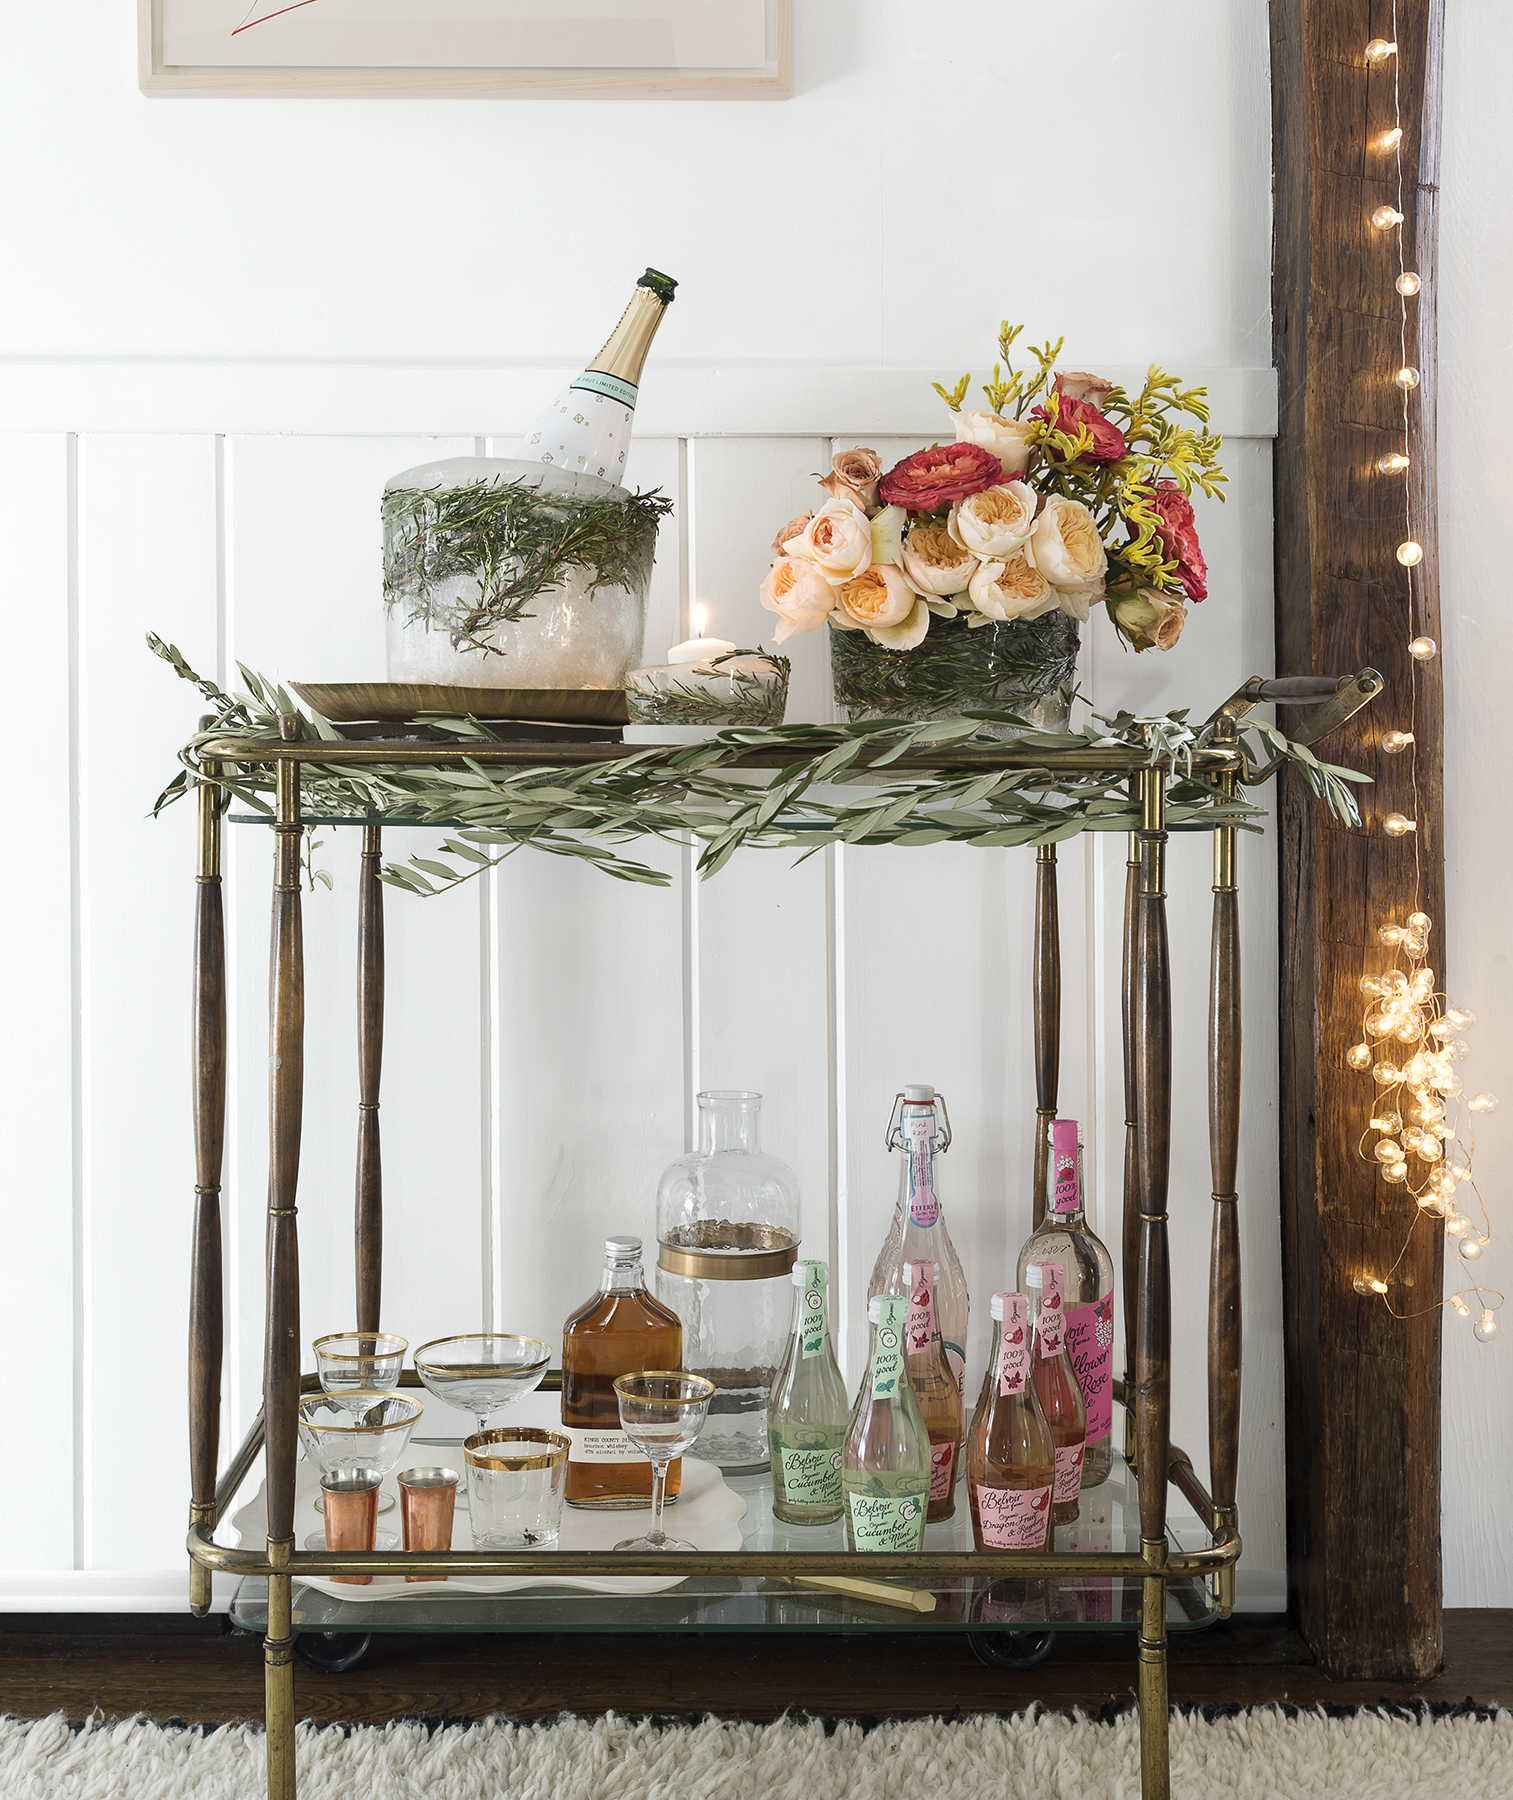 Bar cart decorated with olive branches, flowers